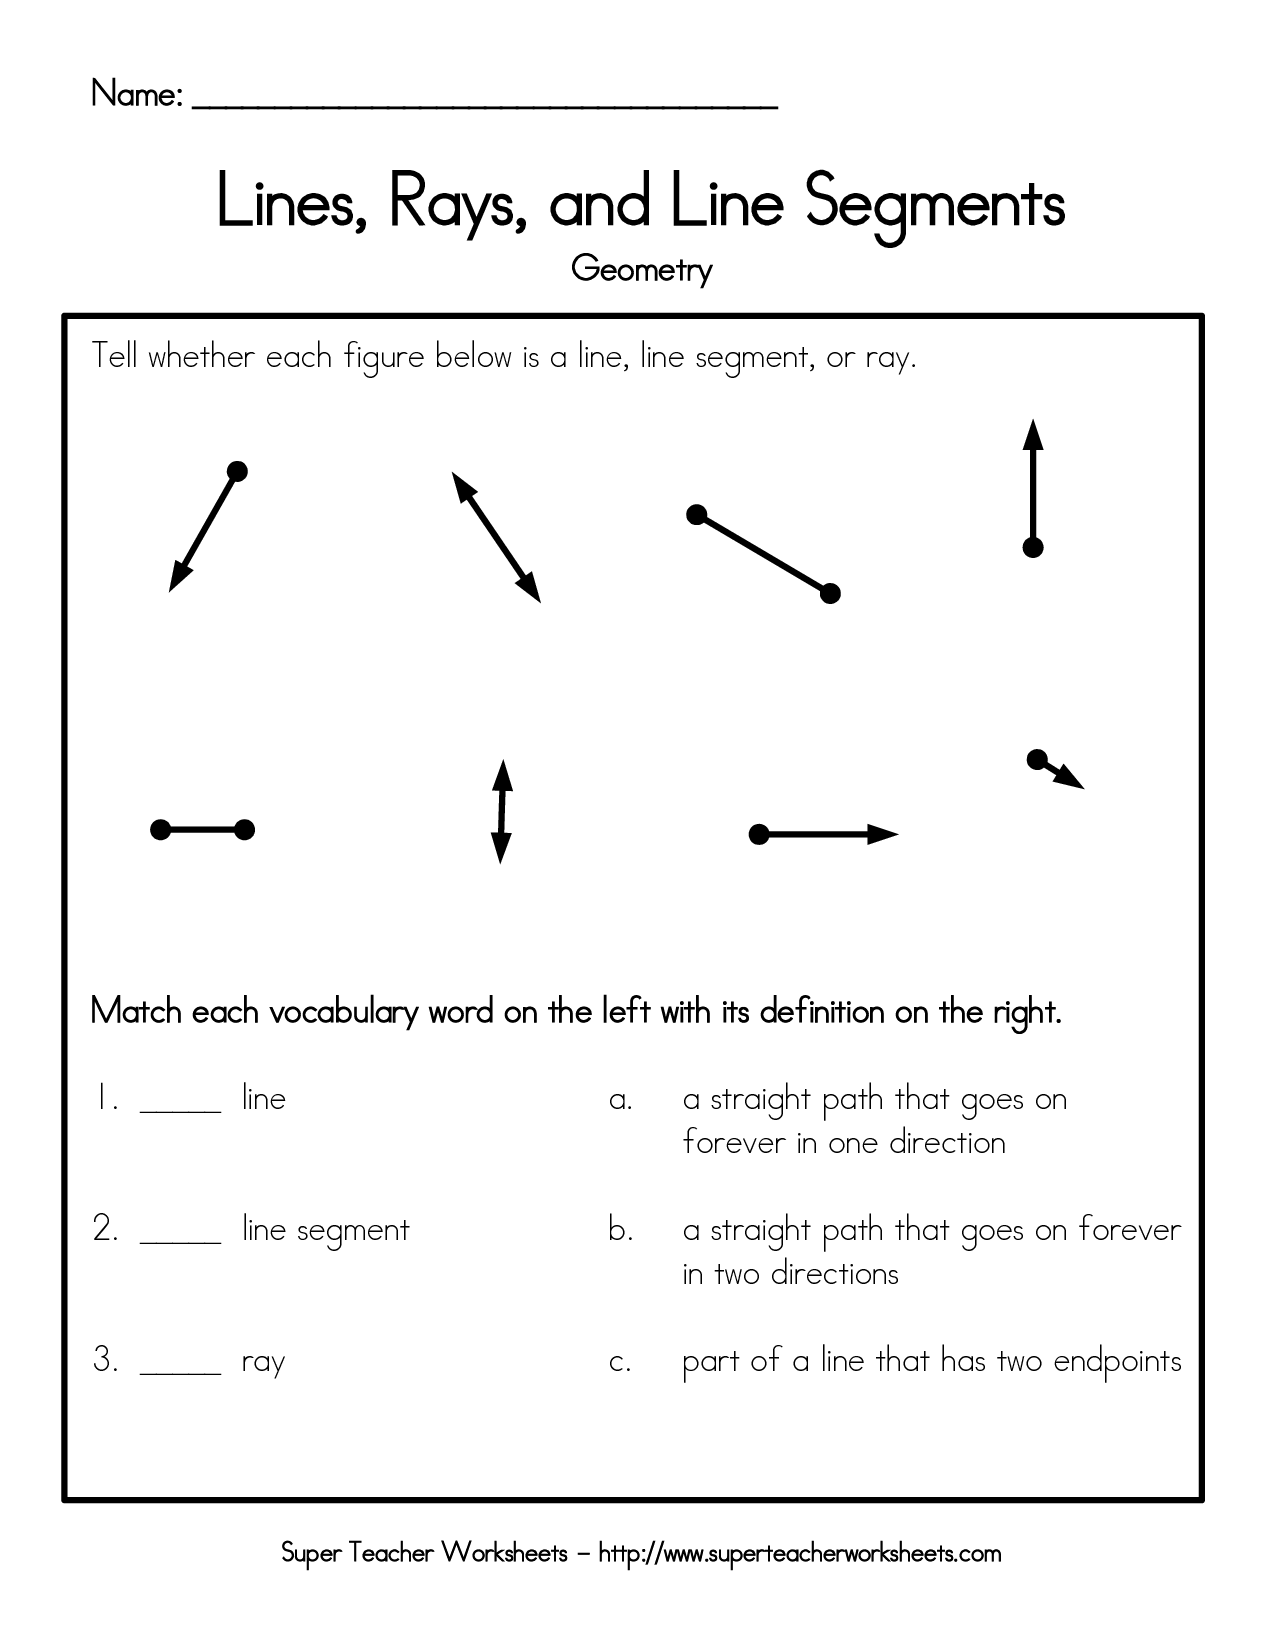 Lines Rays And Line Segments Worksheet